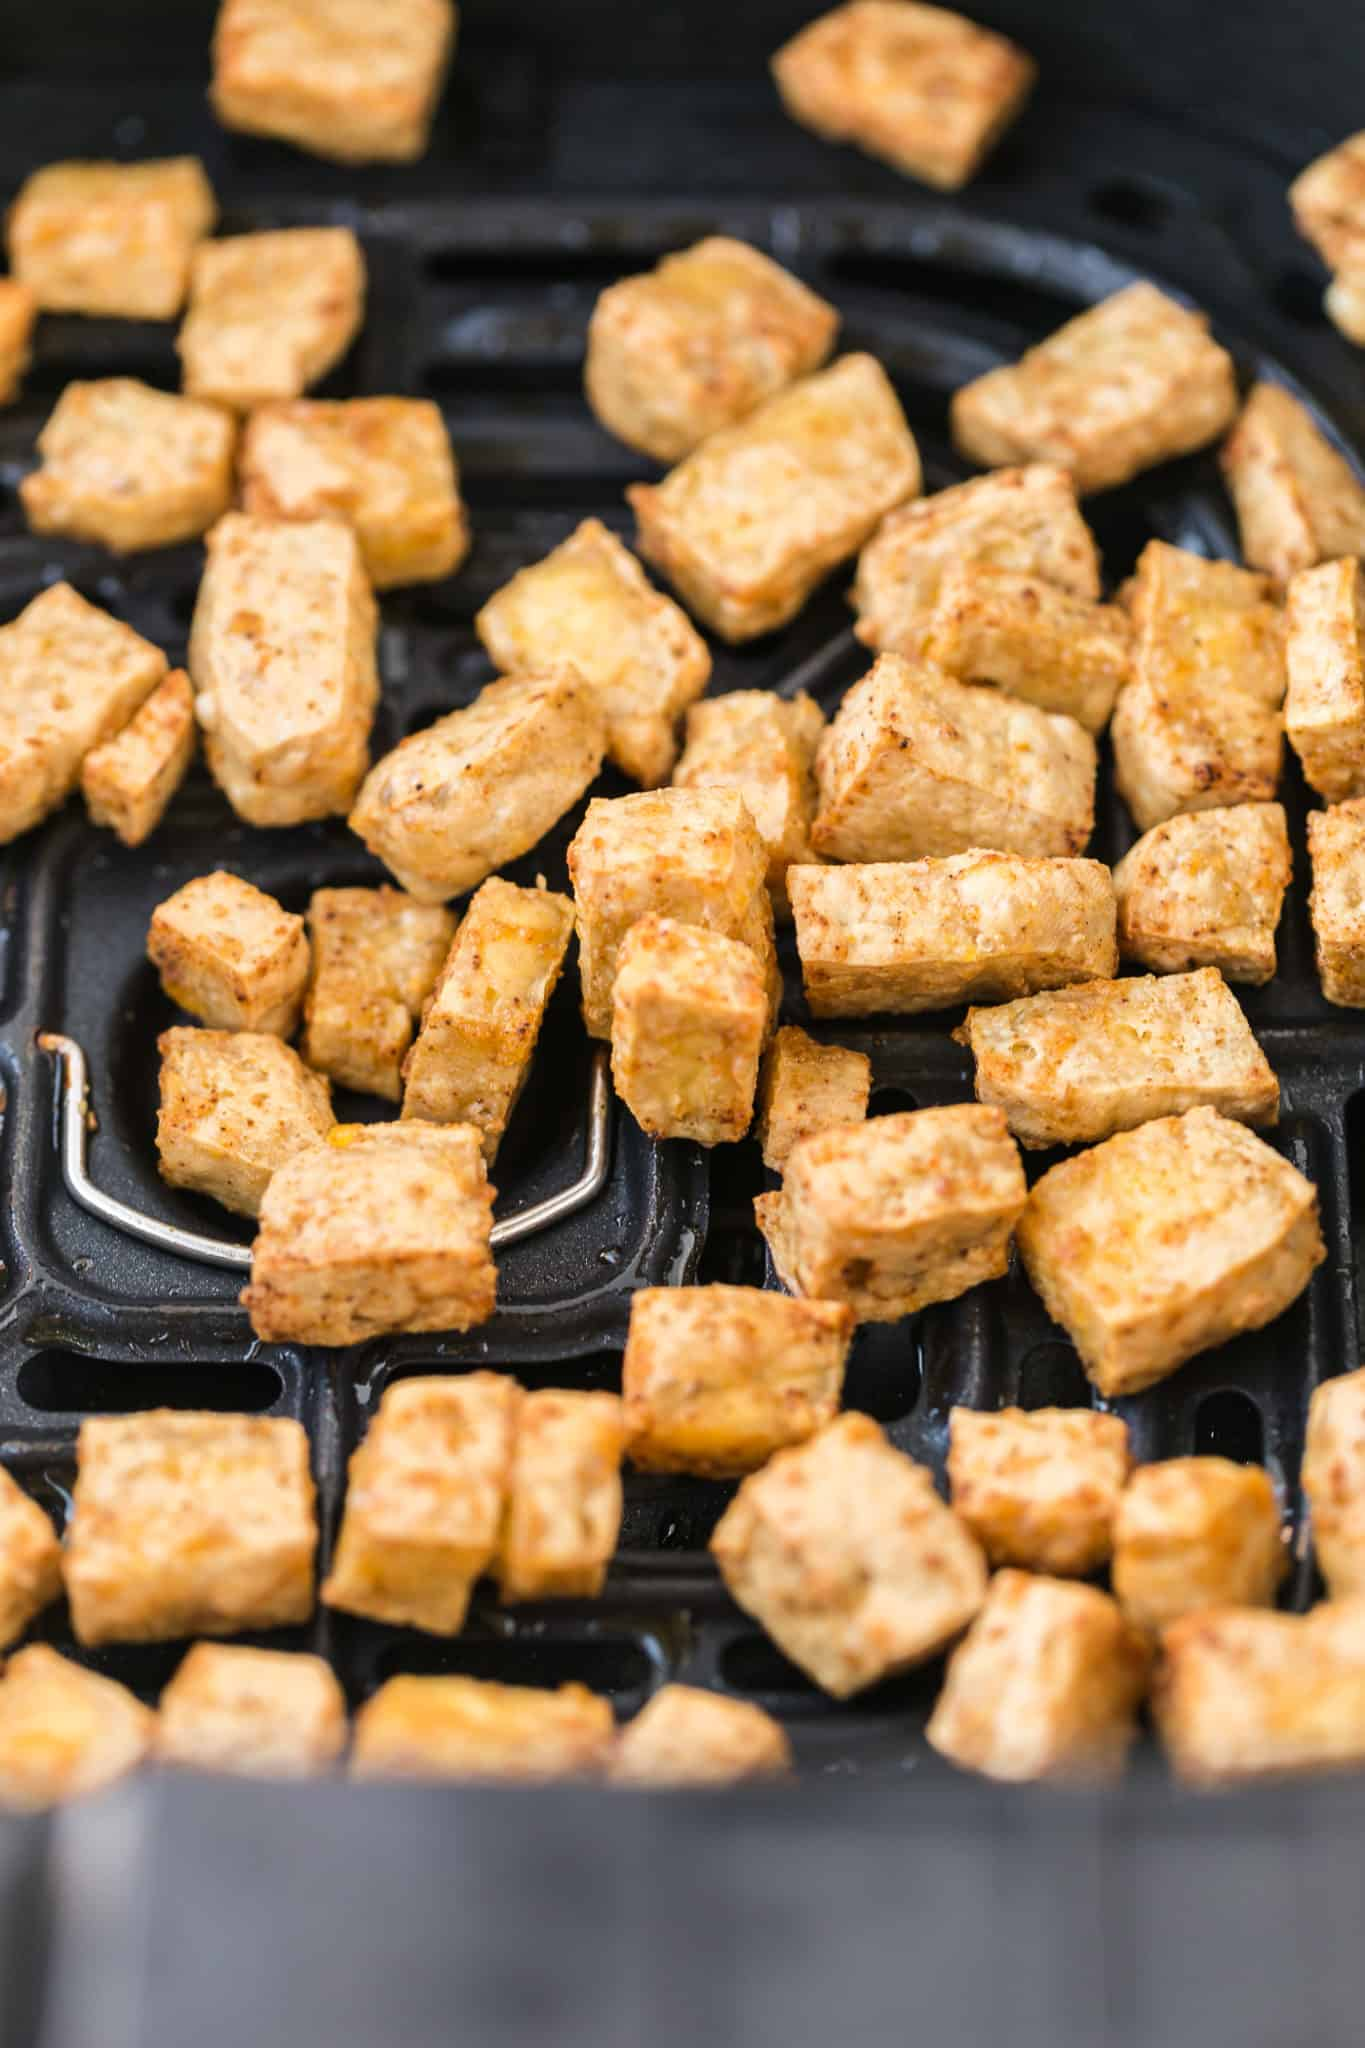 crispy tofu done cooking in an air fryer